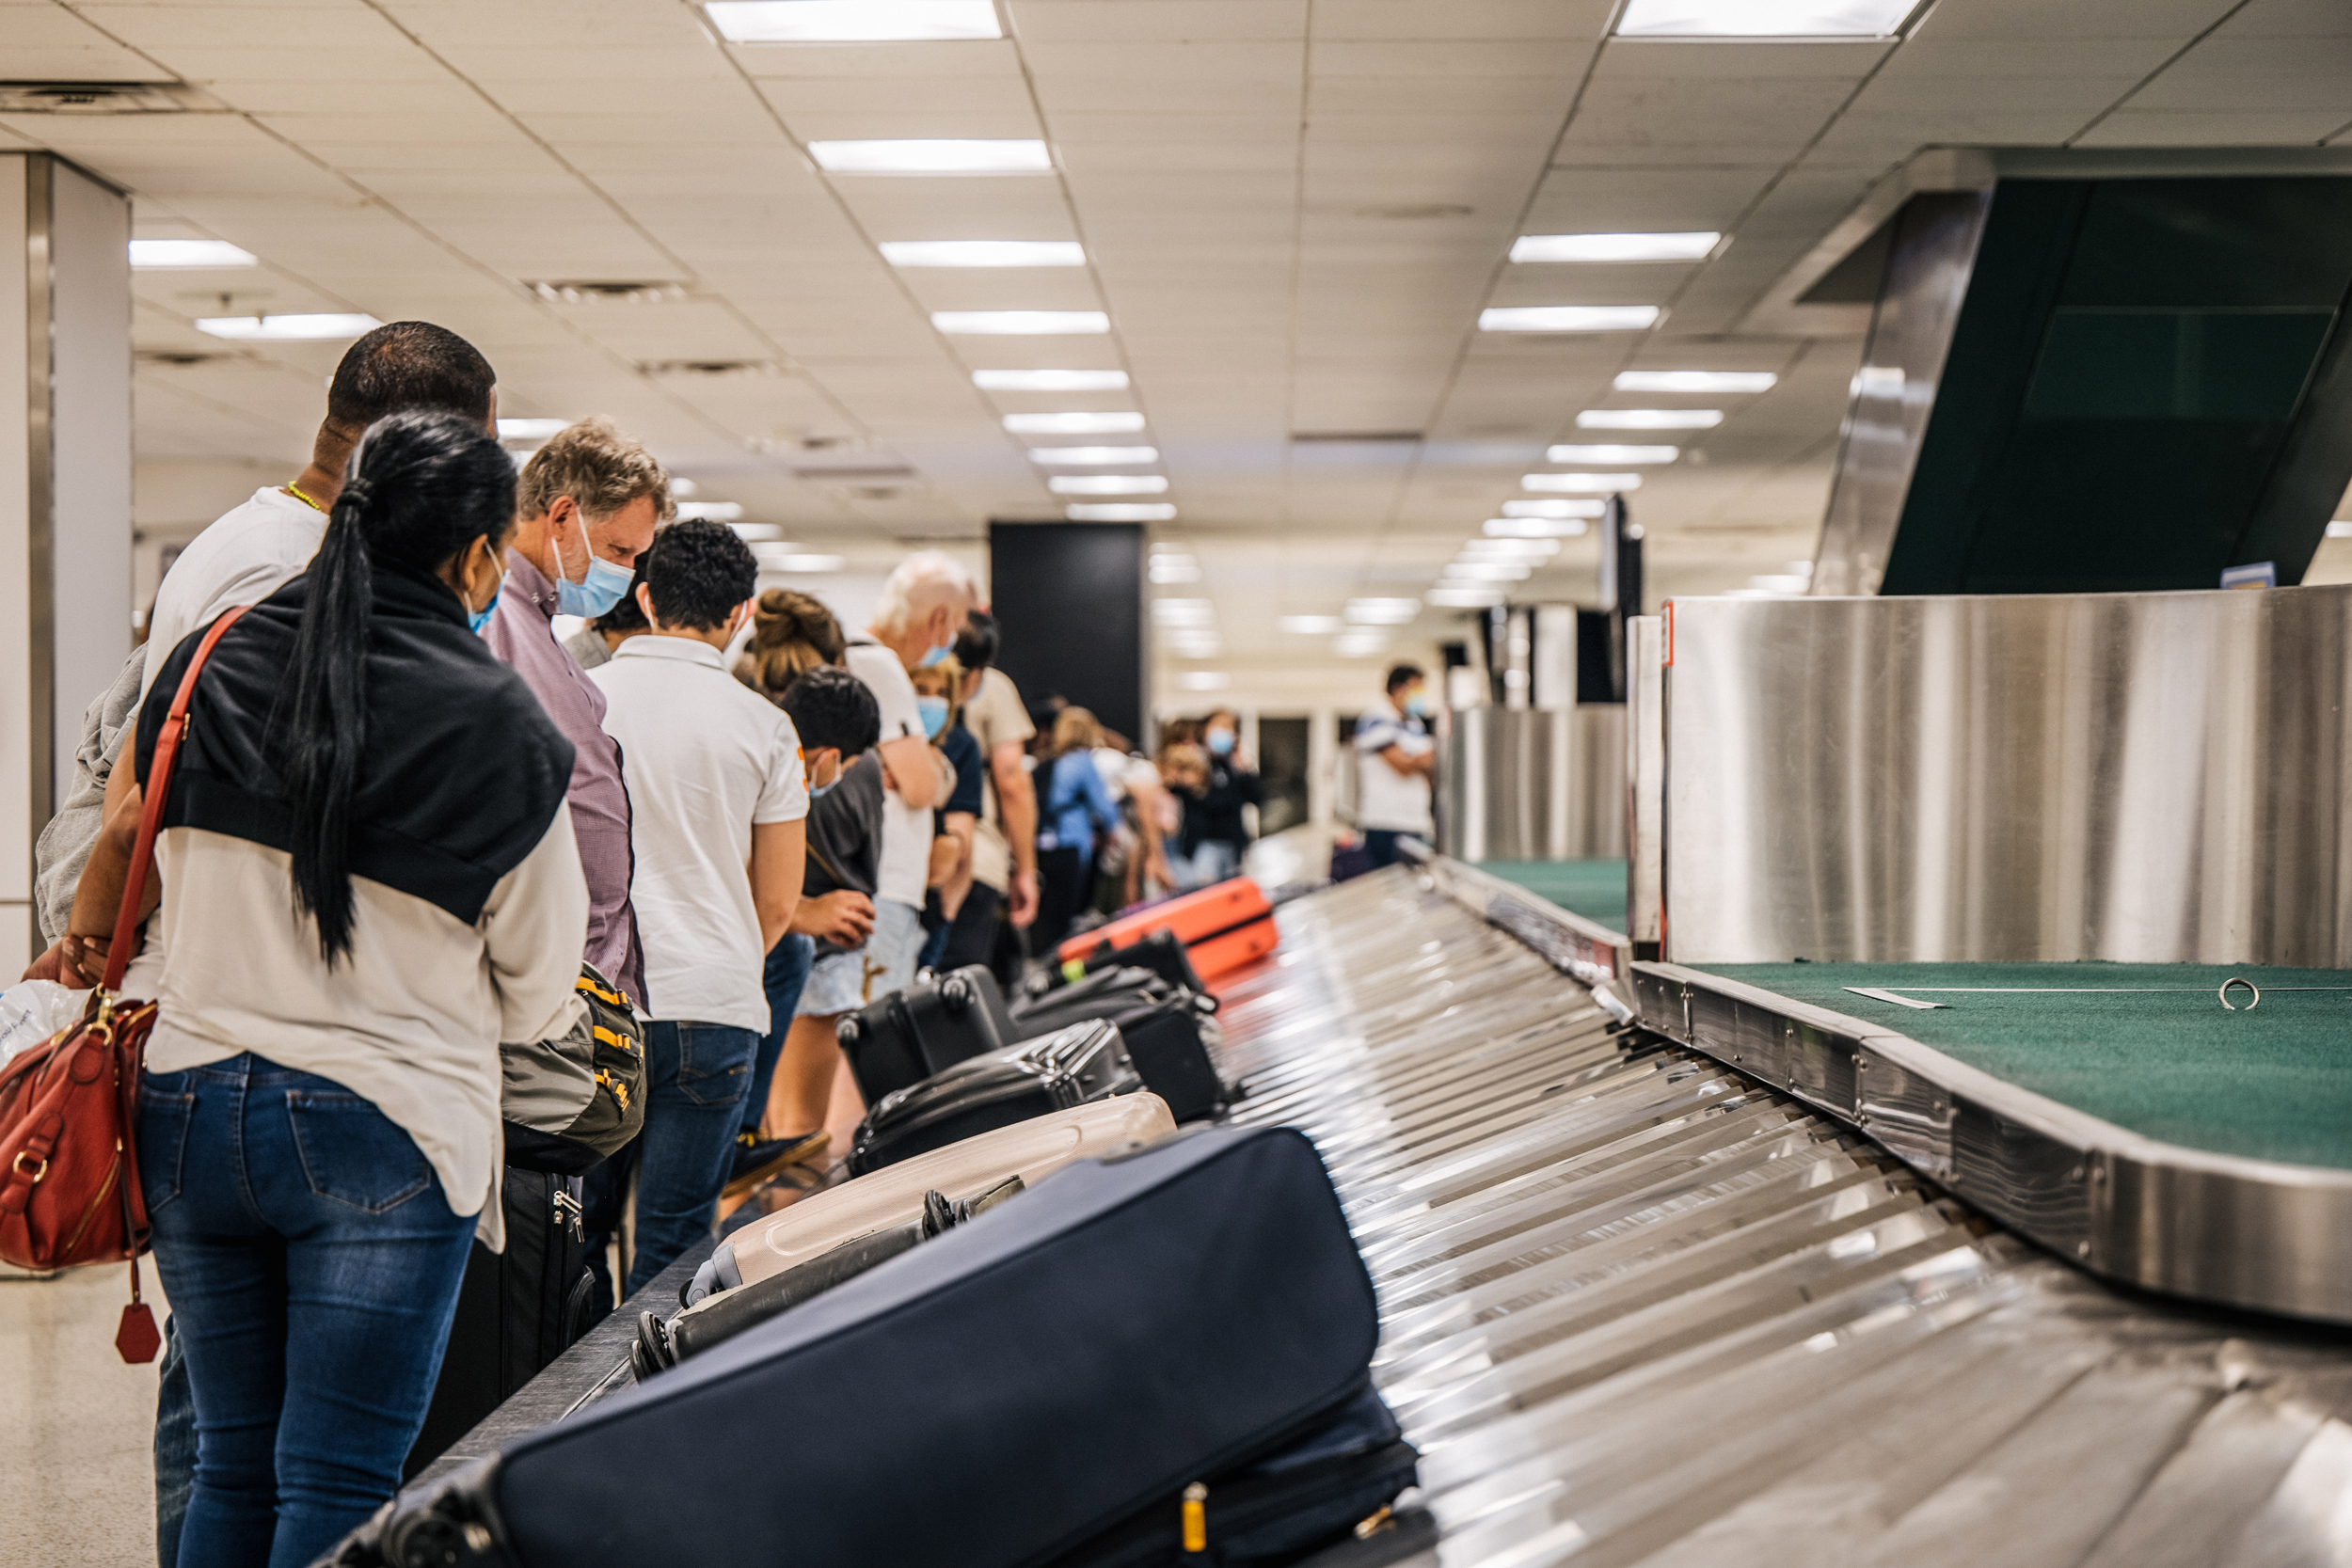 Air travel sees sharp decline as delta variant continues to derail vacation plans